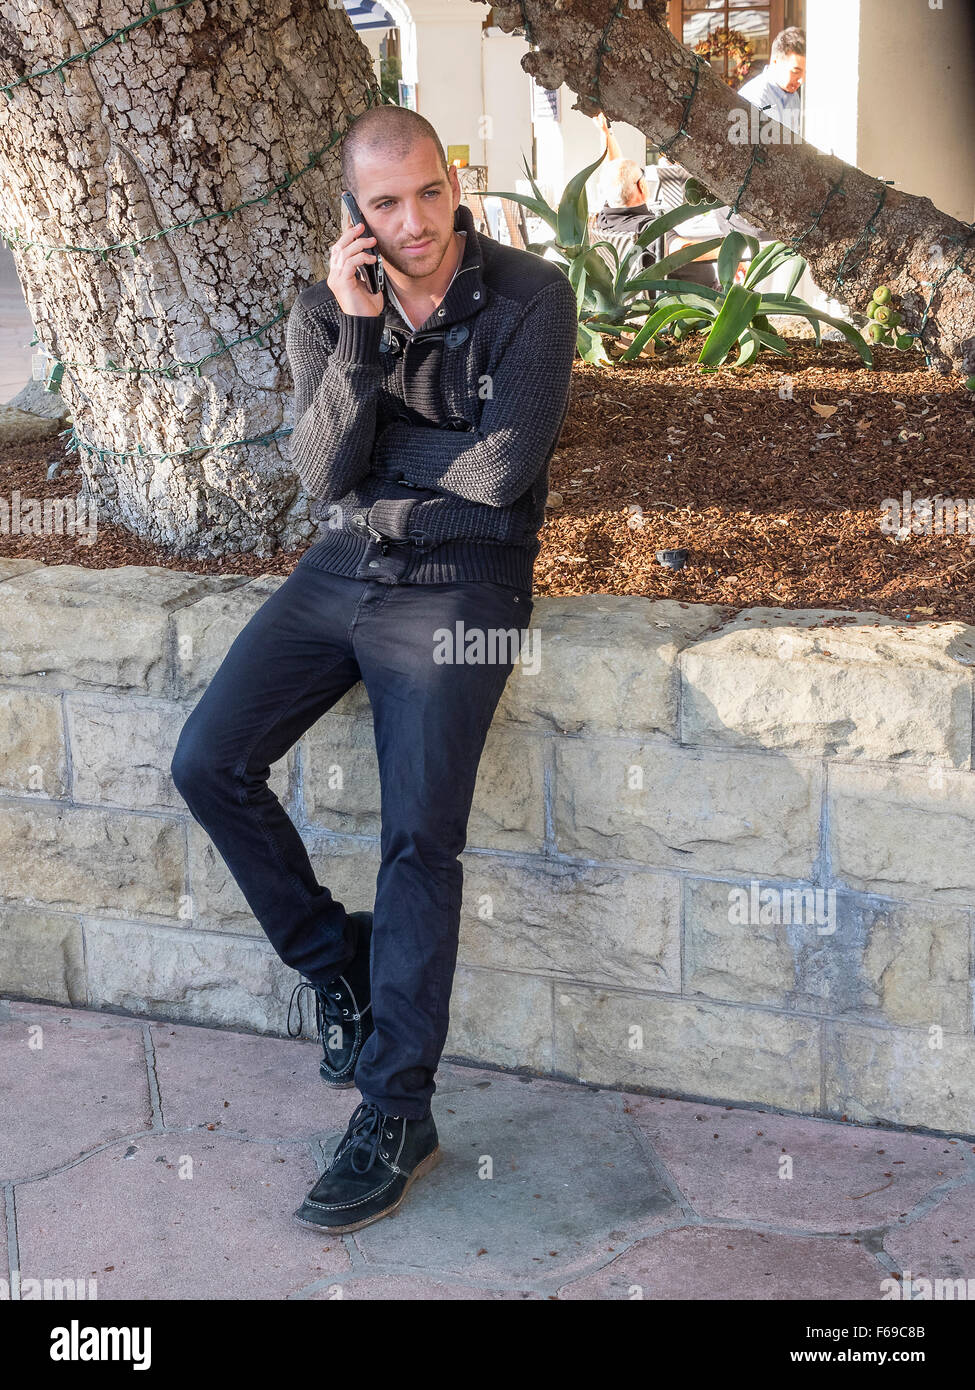 A 20-30 year old male dressed in all black looks straight ahead as he talks on his cell phone in Santa Barbara, - Stock Image